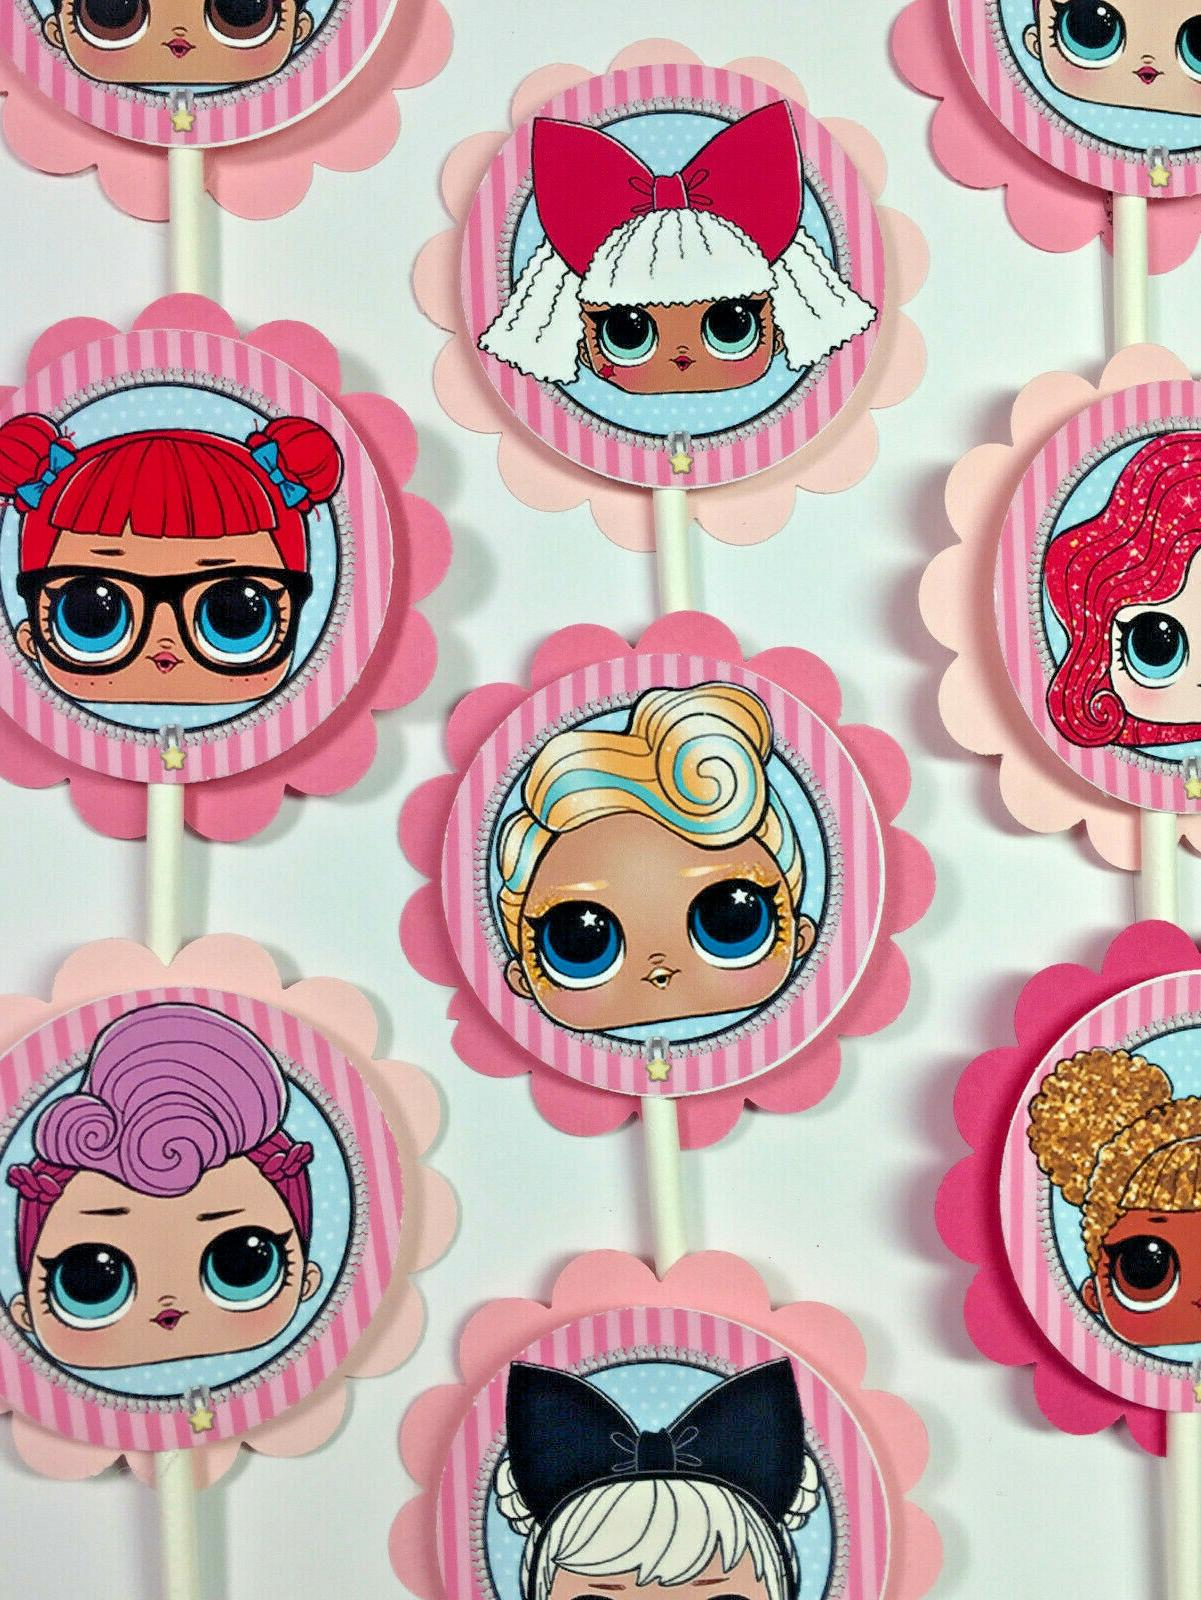 30 lol dolls dimensional party cupcake toppers